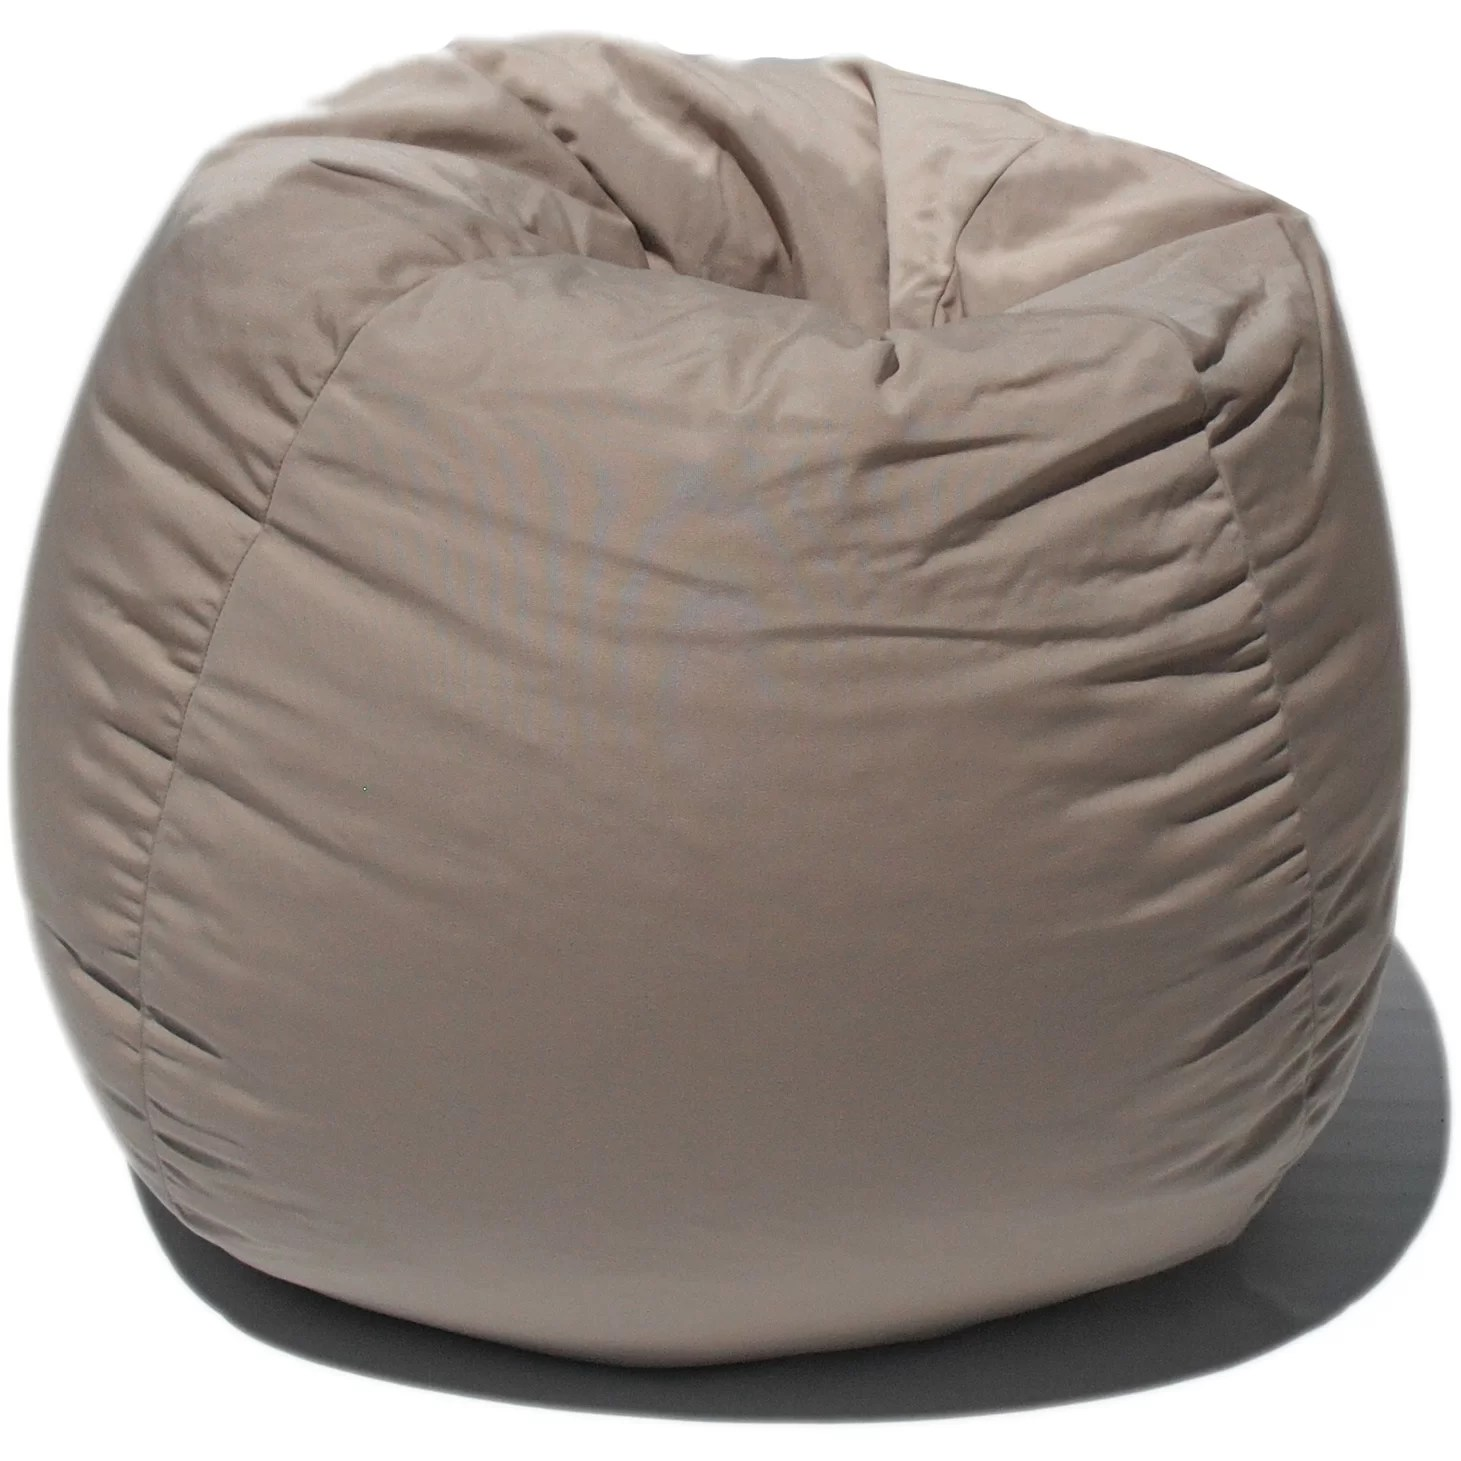 Beanbag Chair Viv 43 Rae Bean Bag Chair And Reviews Wayfair